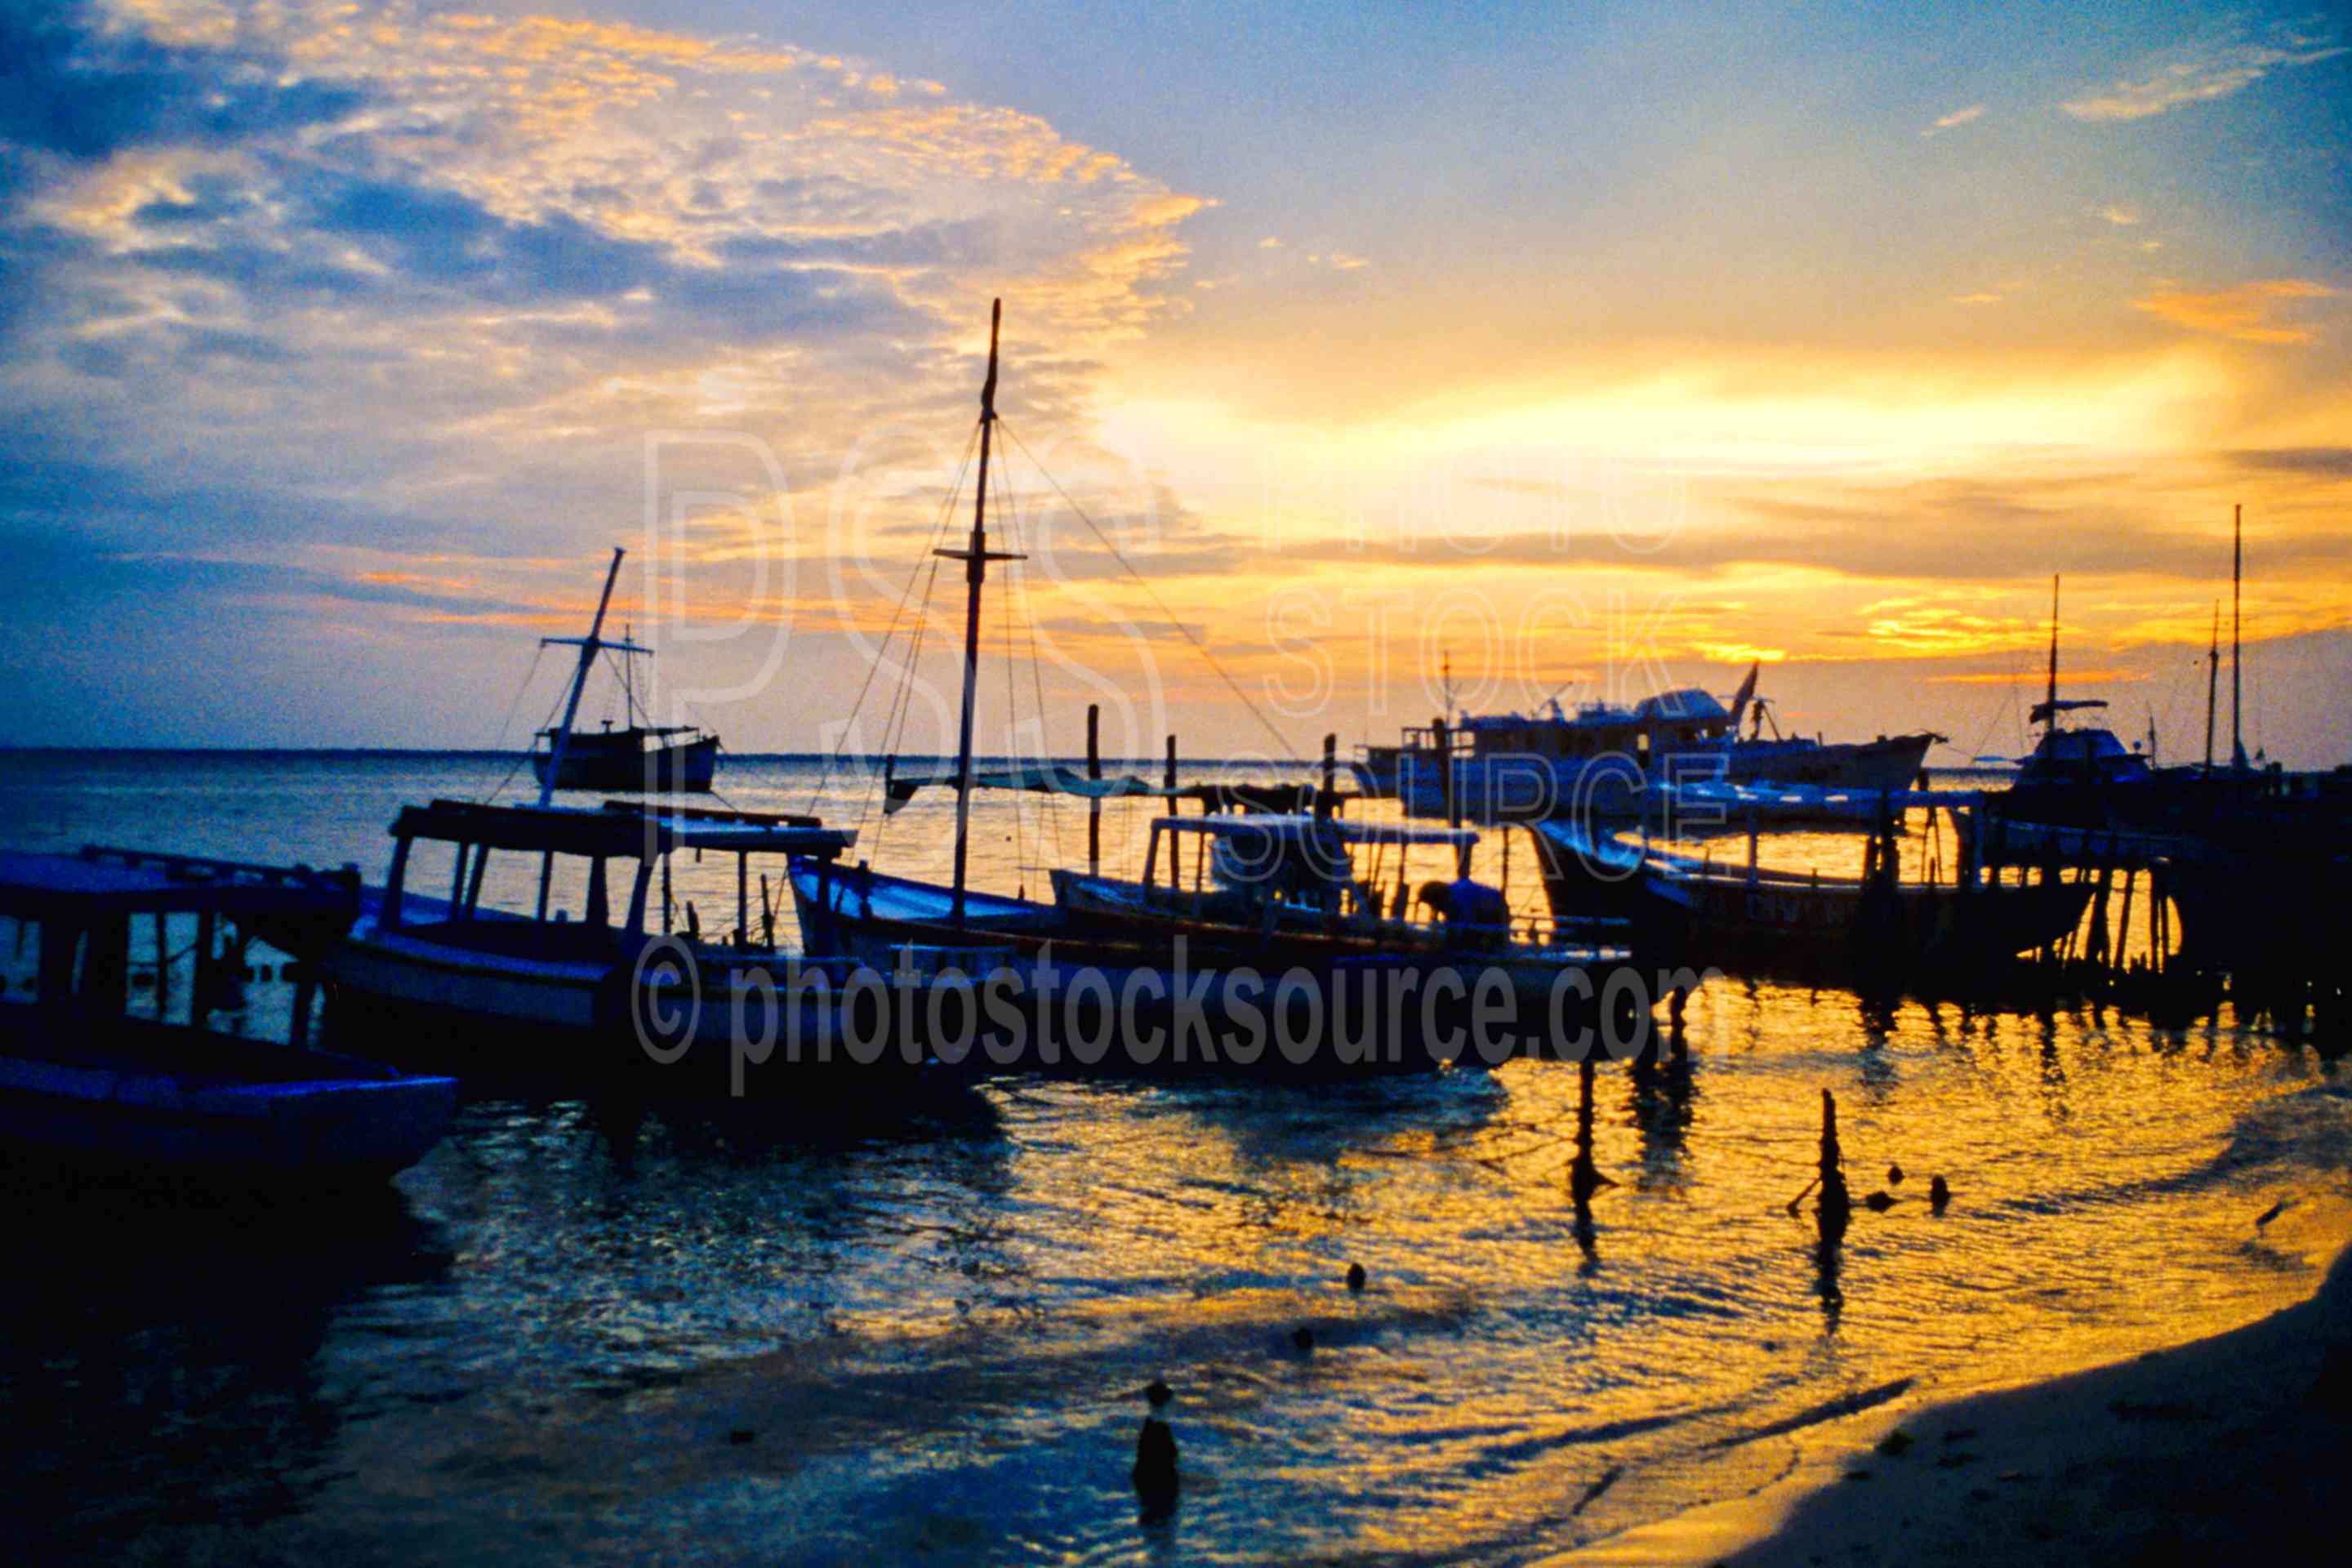 Boats at Sunset,ocean,sunset,seascapes,boats